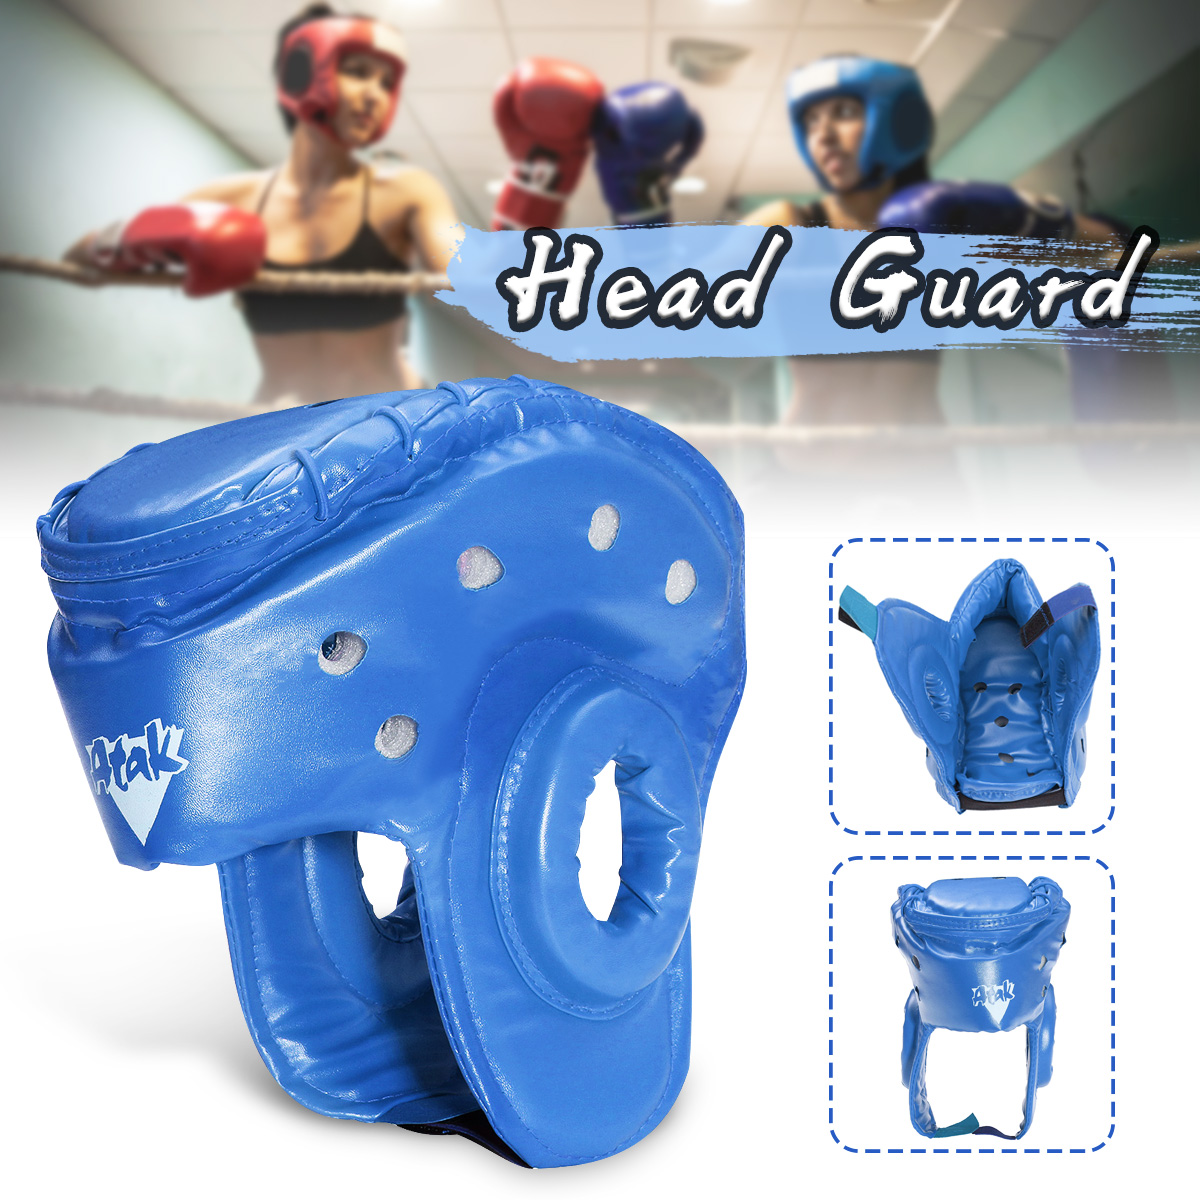 MMA Head Guard Protector Helmet Boxing Headgear Martial Arts Sparring Protection Kid Students Taekwondo Sparring Gear Set